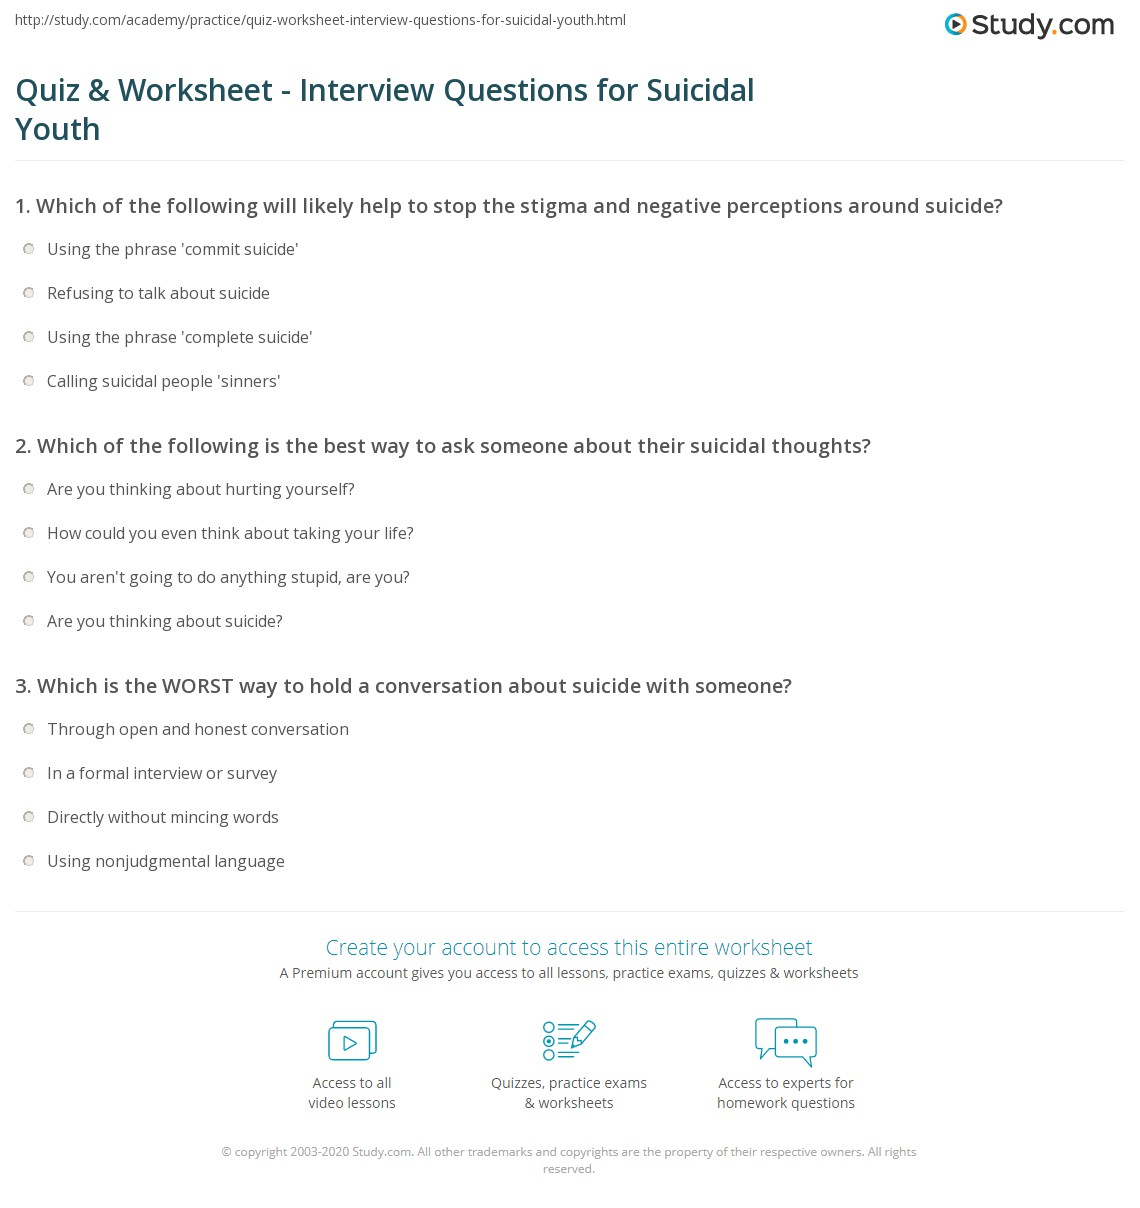 quiz worksheet interview questions for suicidal youth com which of the following is the best way to ask someone about their suicidal thoughts